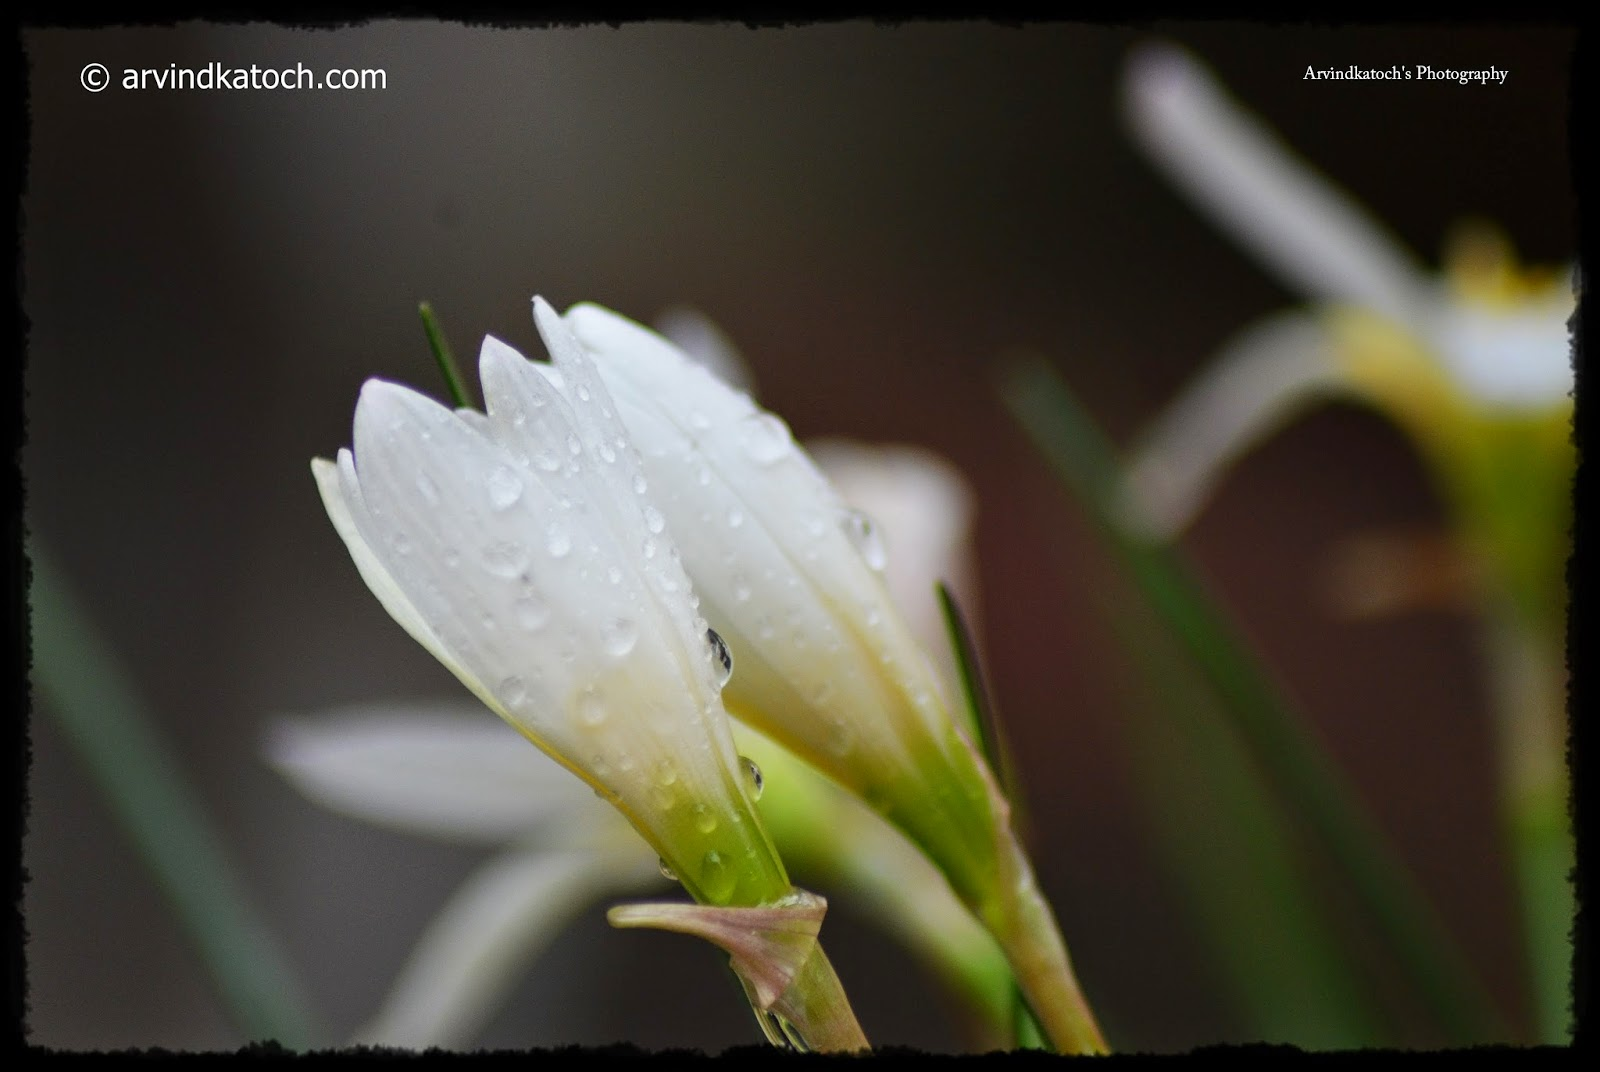 White Grass, Flower, Rain drops